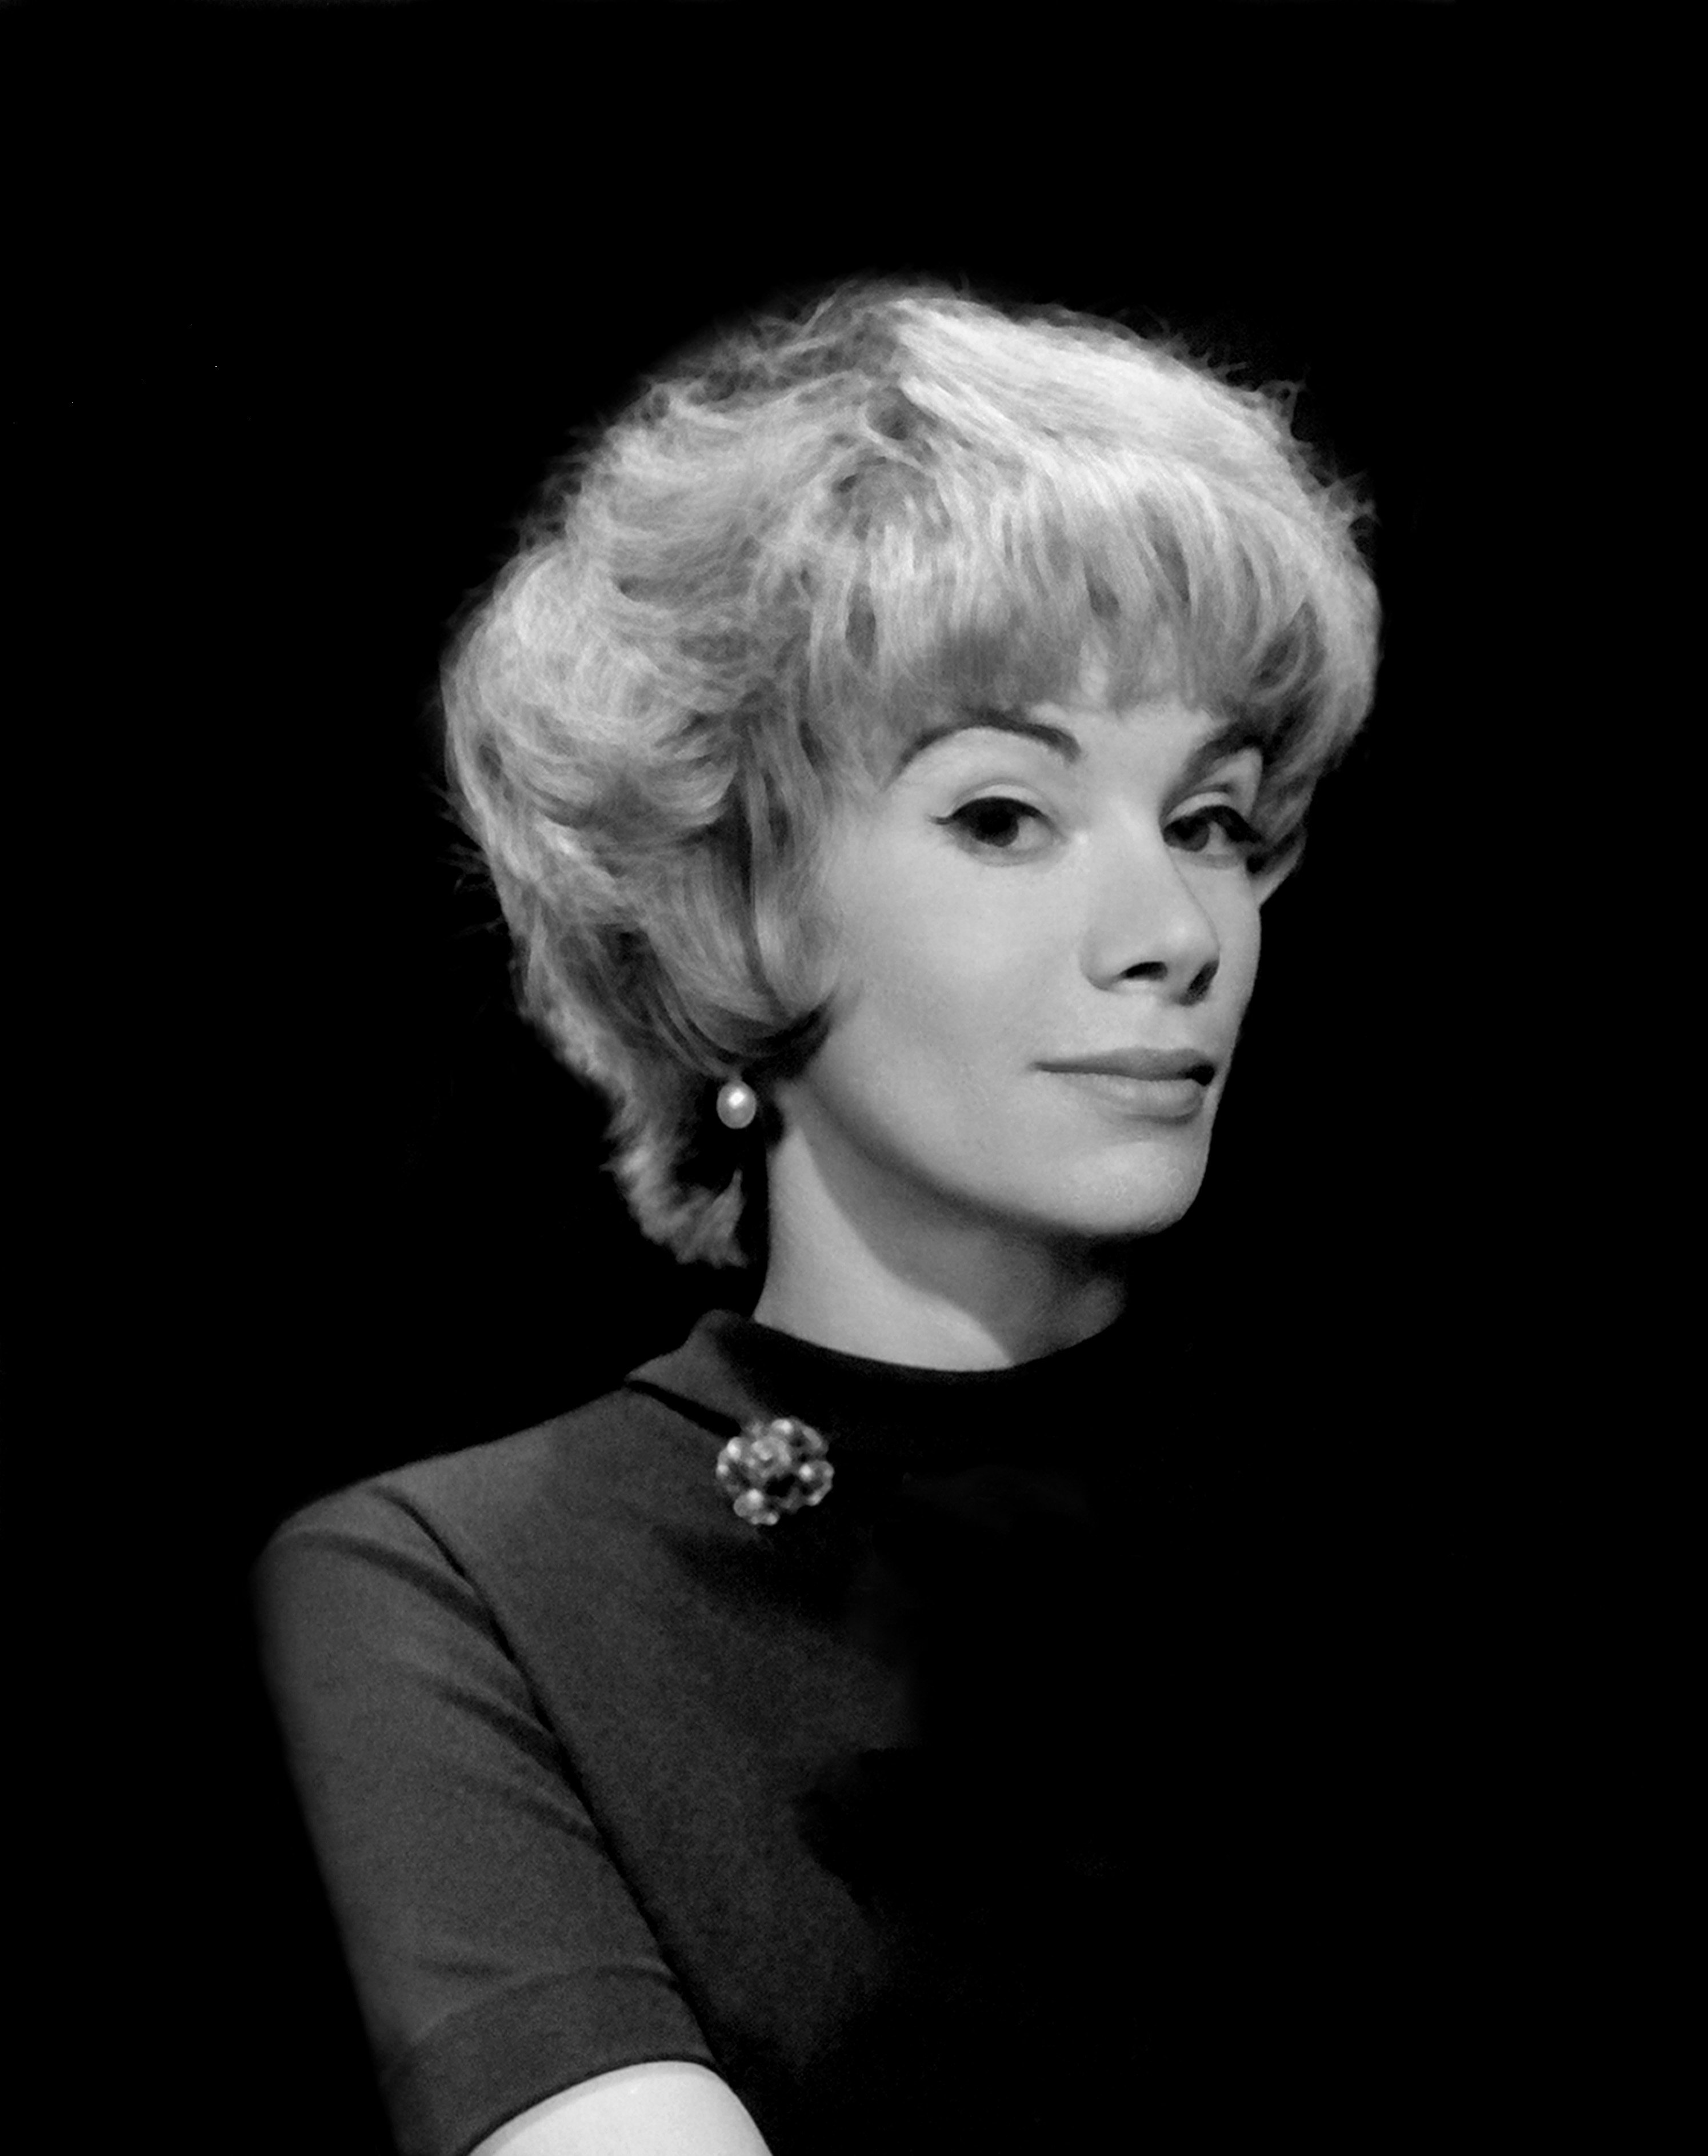 Joan Rivers, pictured here in 1965, was born Joan Alexandra Molinsky in Brooklyn N.Y. on June 8, 1933.